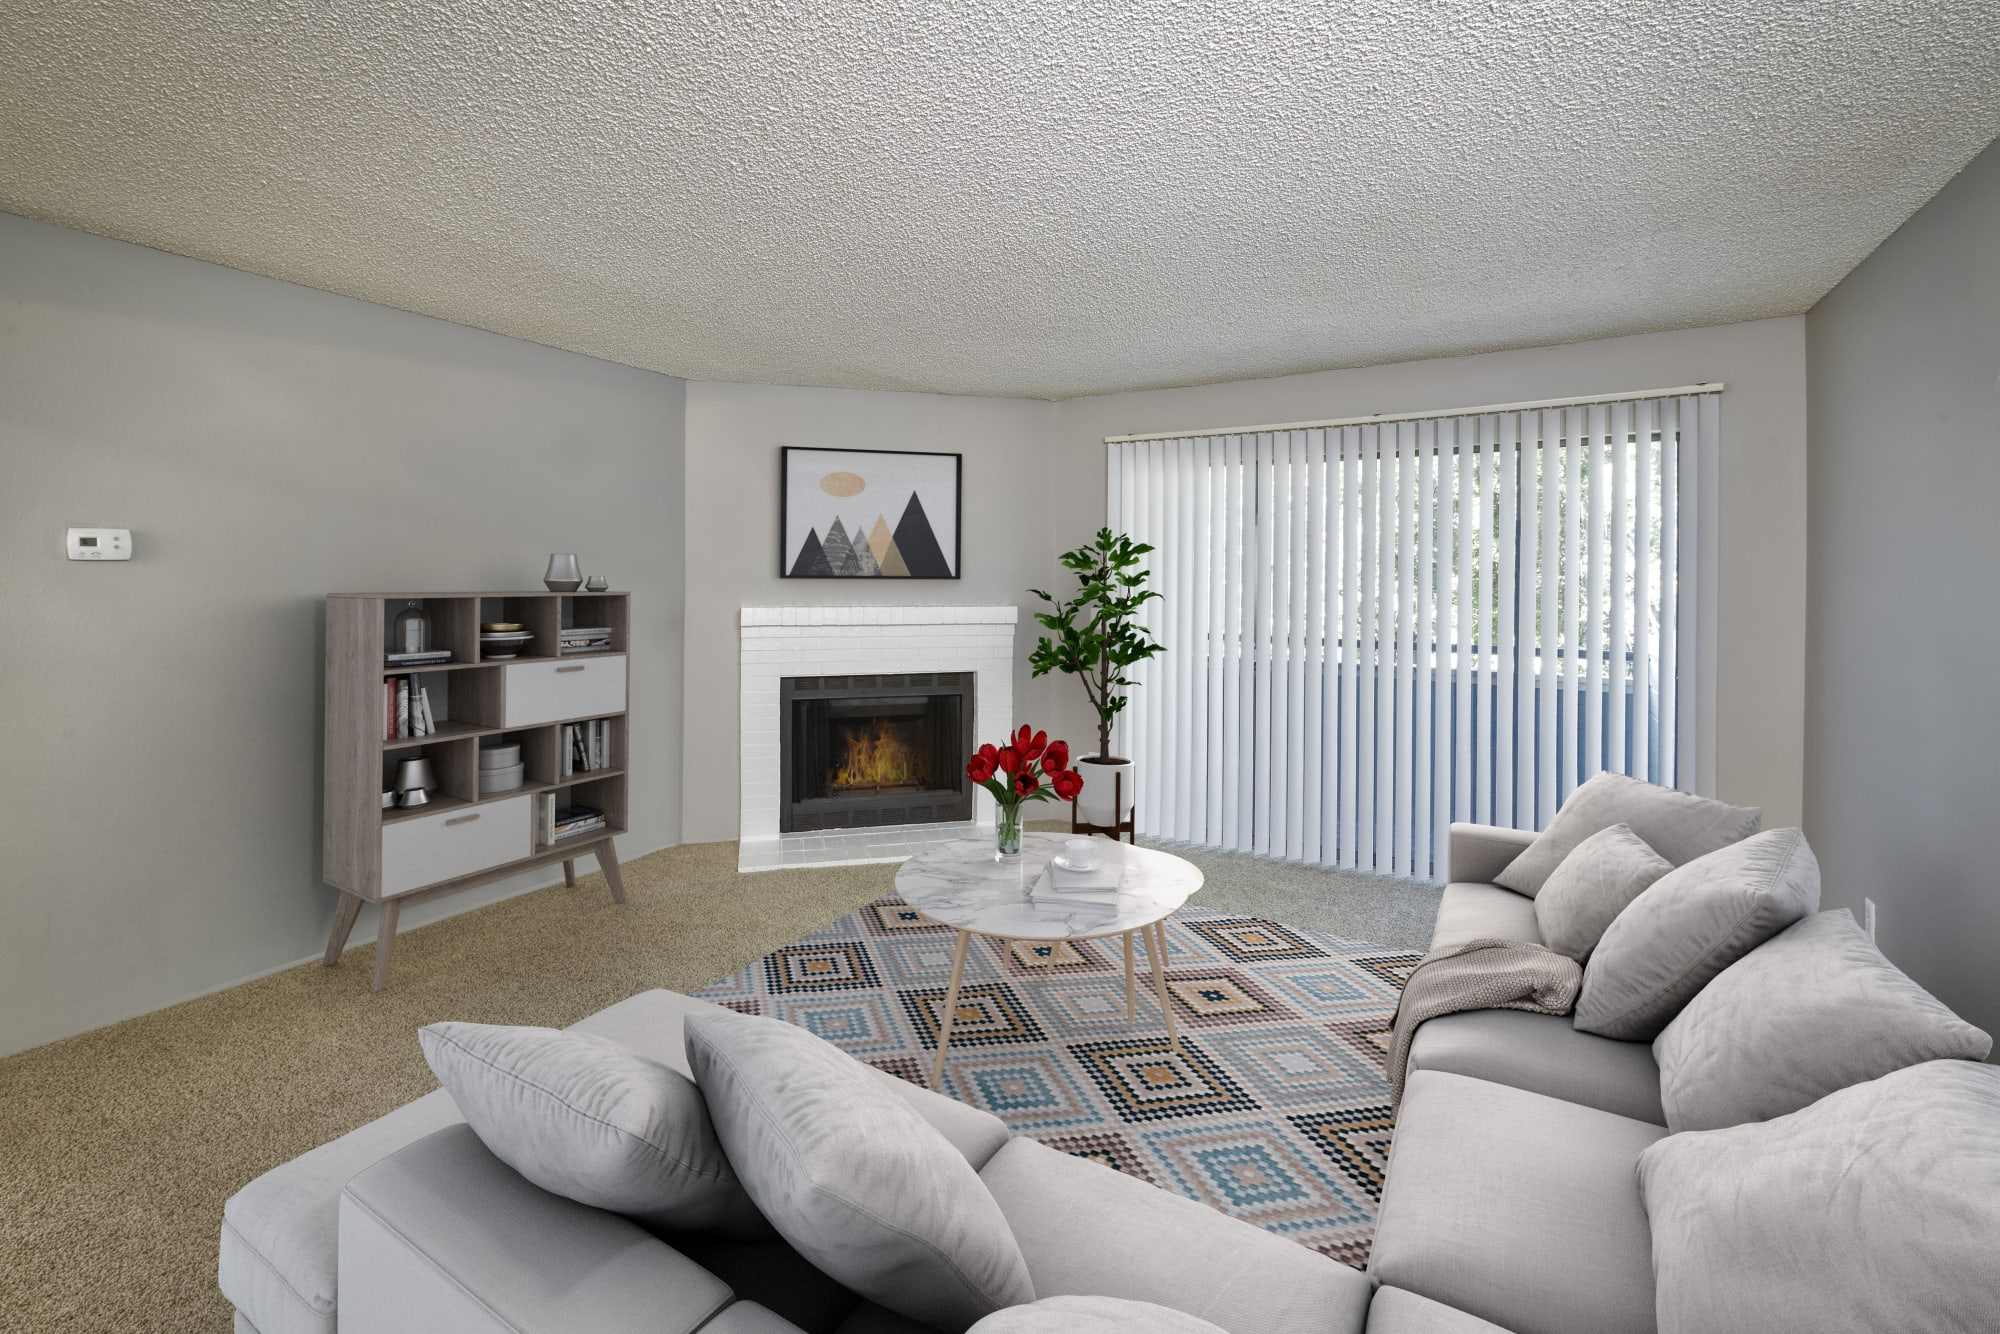 Well decorated living room with a fireplace at Alton Green Apartments in Denver, Colorado